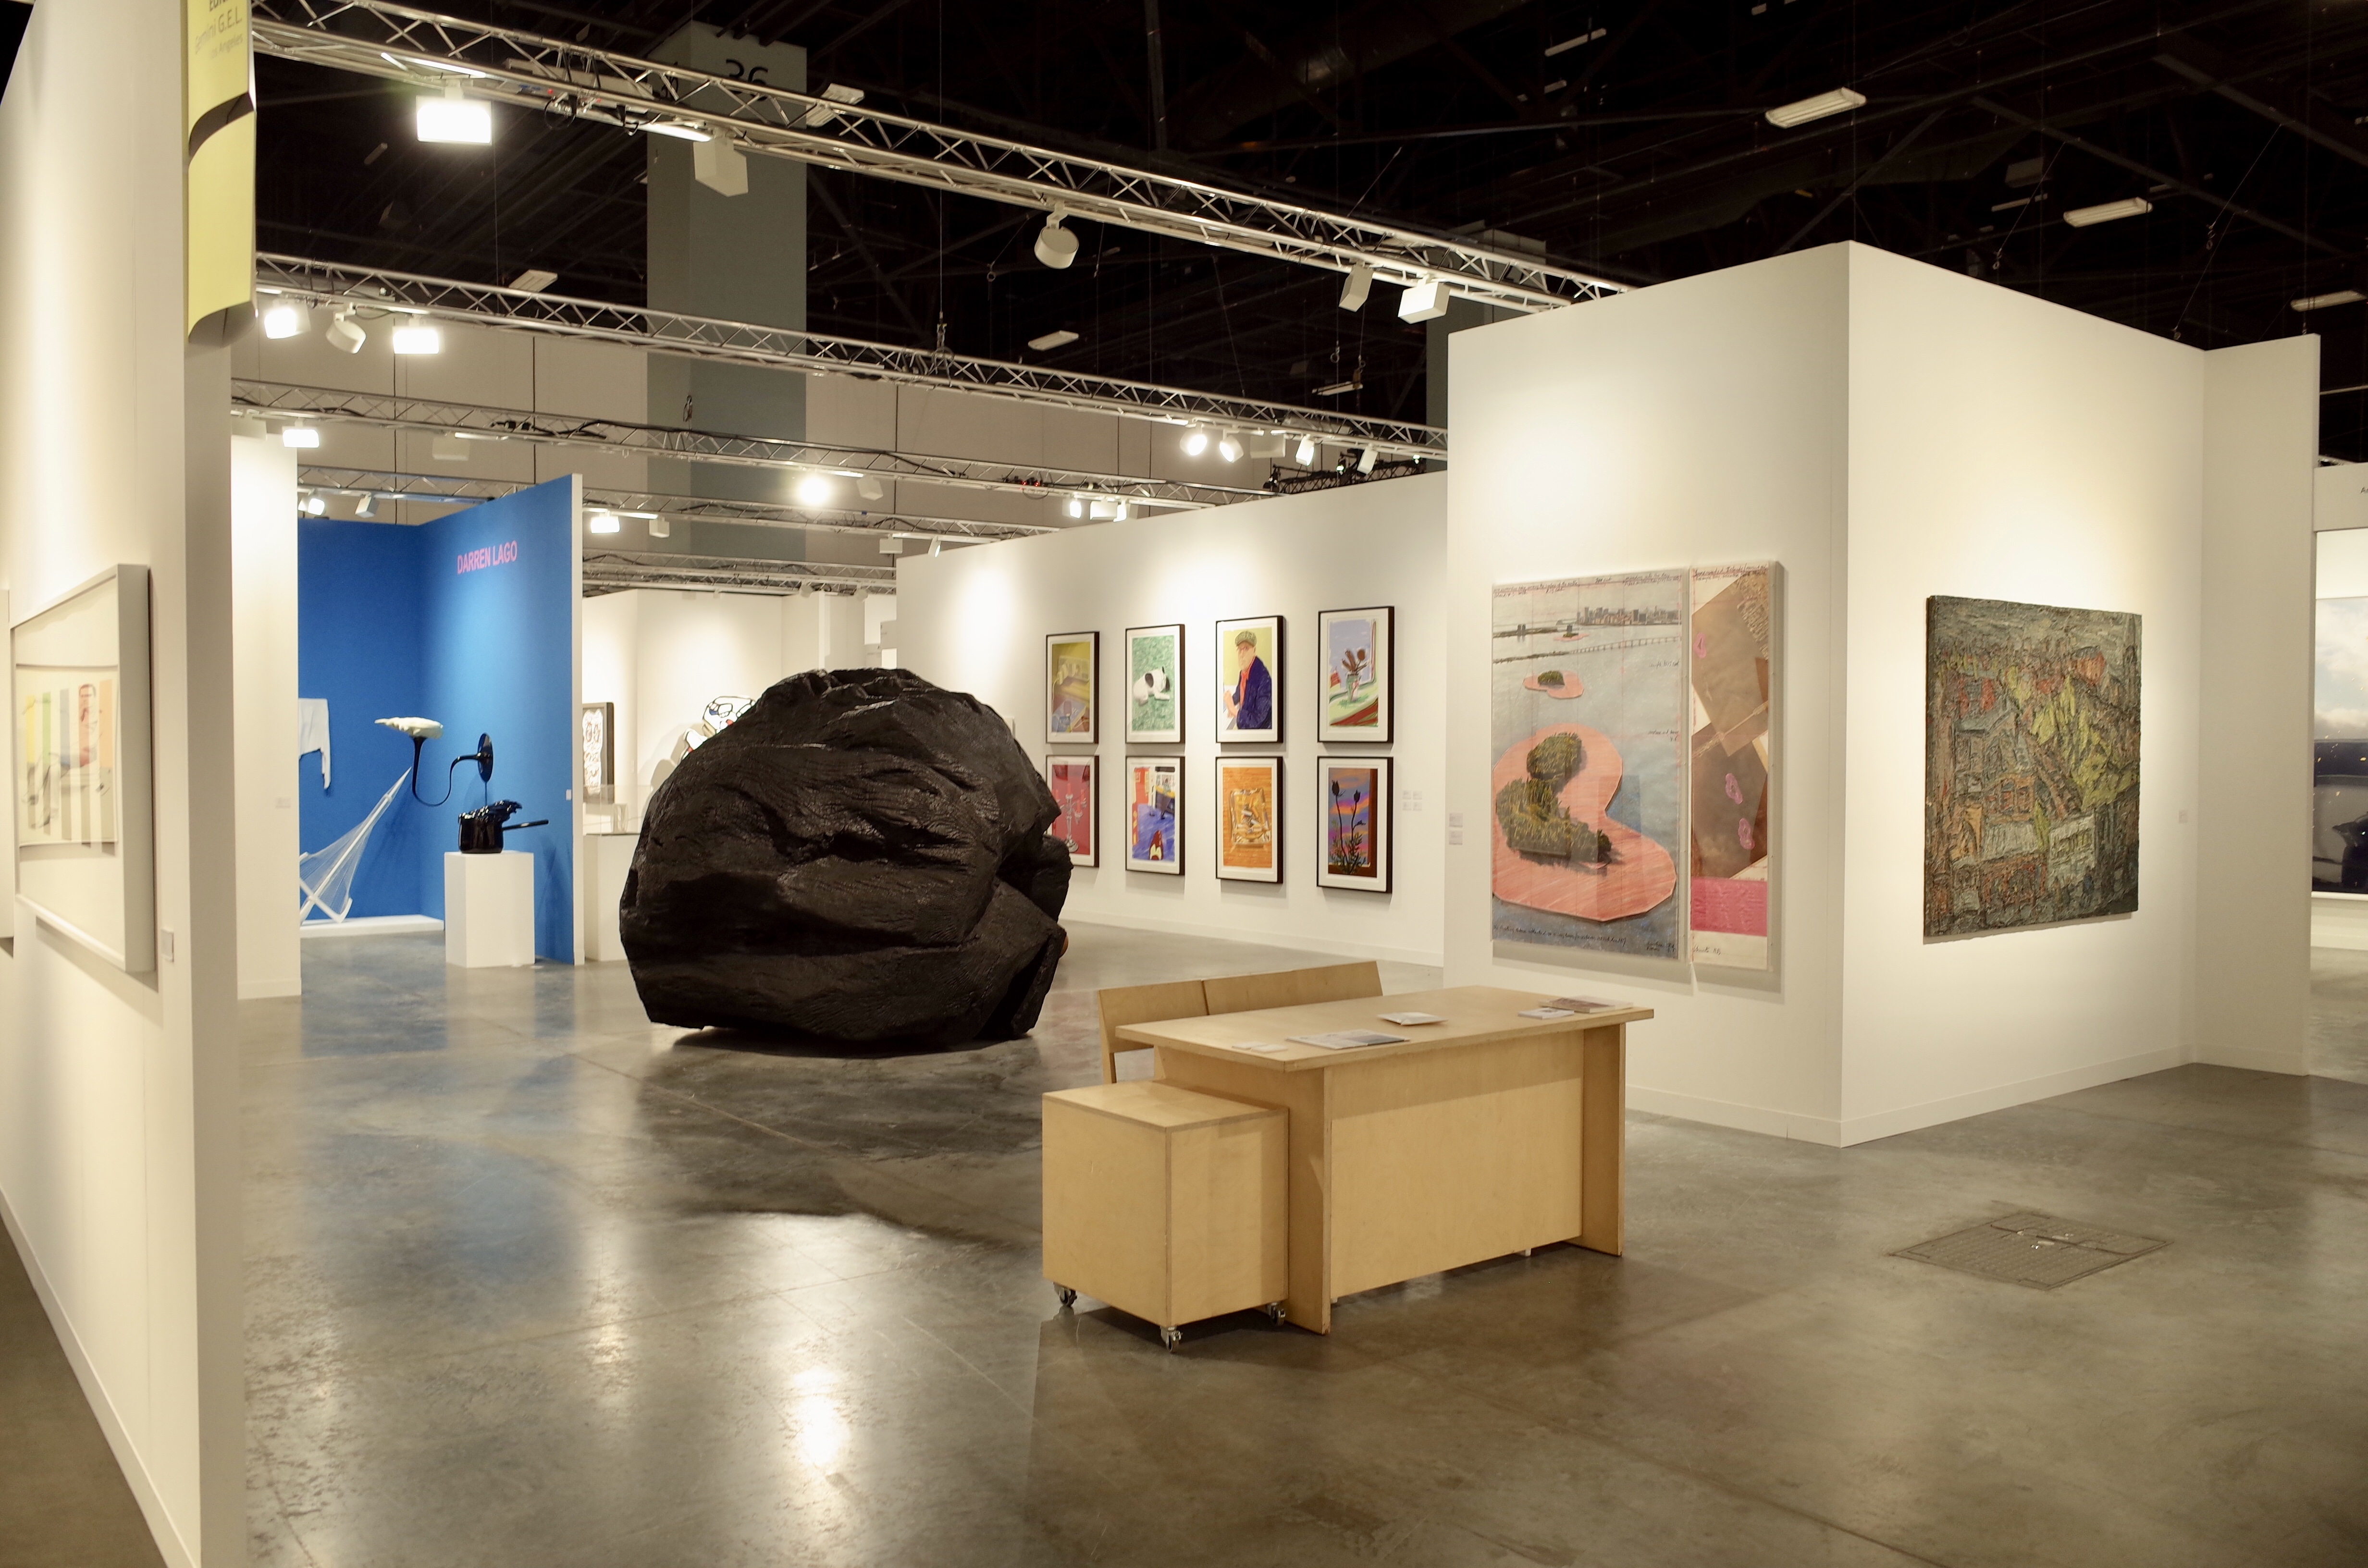 e20d7d5fcd482 The 15 Best Booths at Art Basel in Miami Beach - Artsy